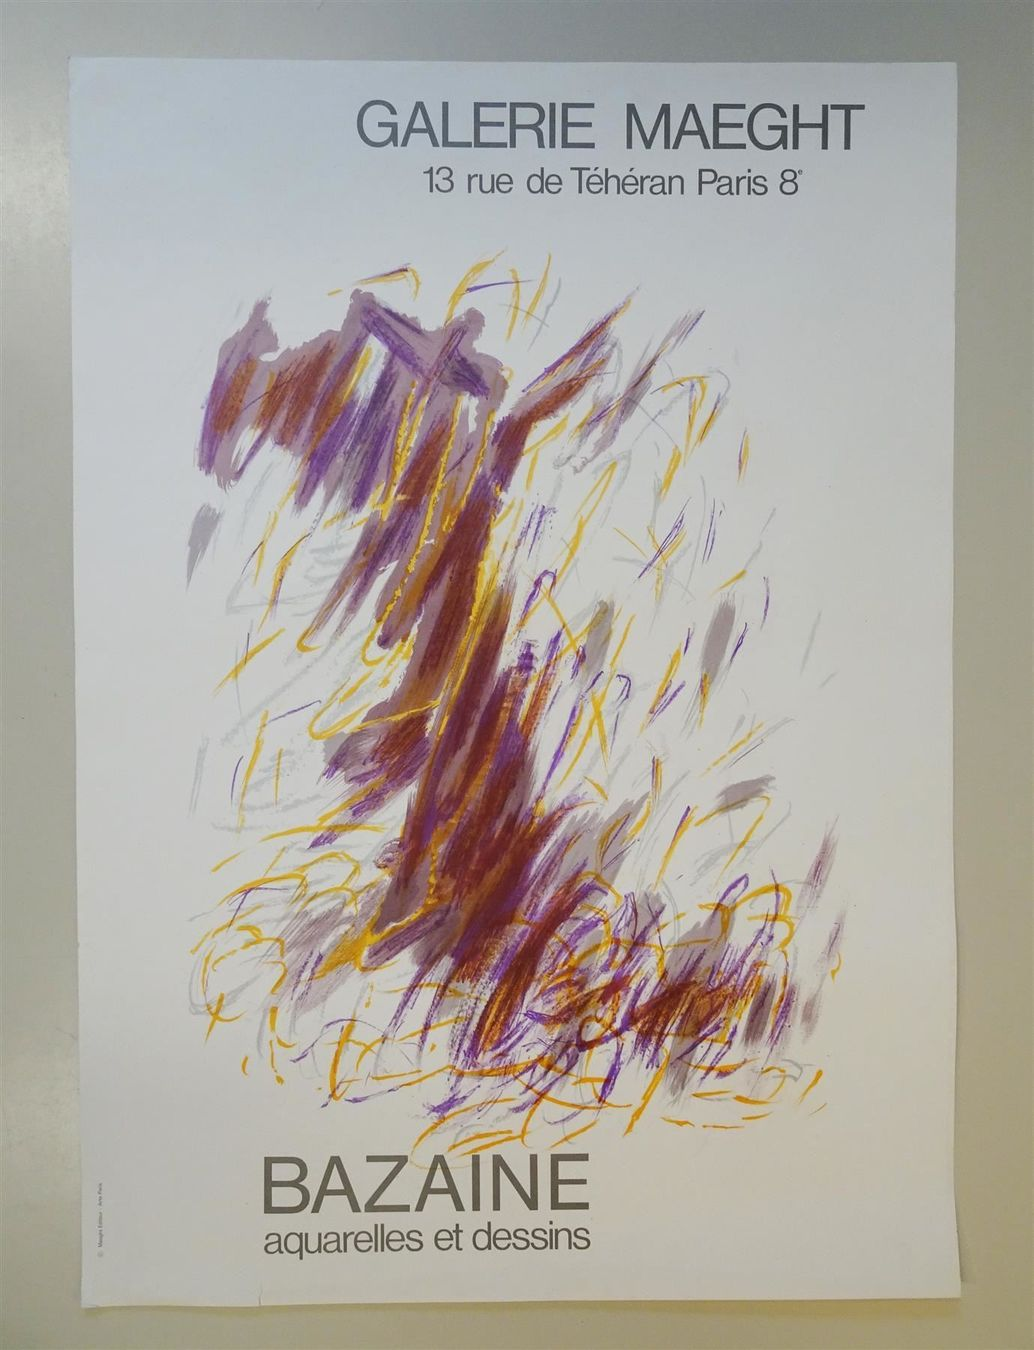 Bazaine Galerie Maeght Lithographie 1968